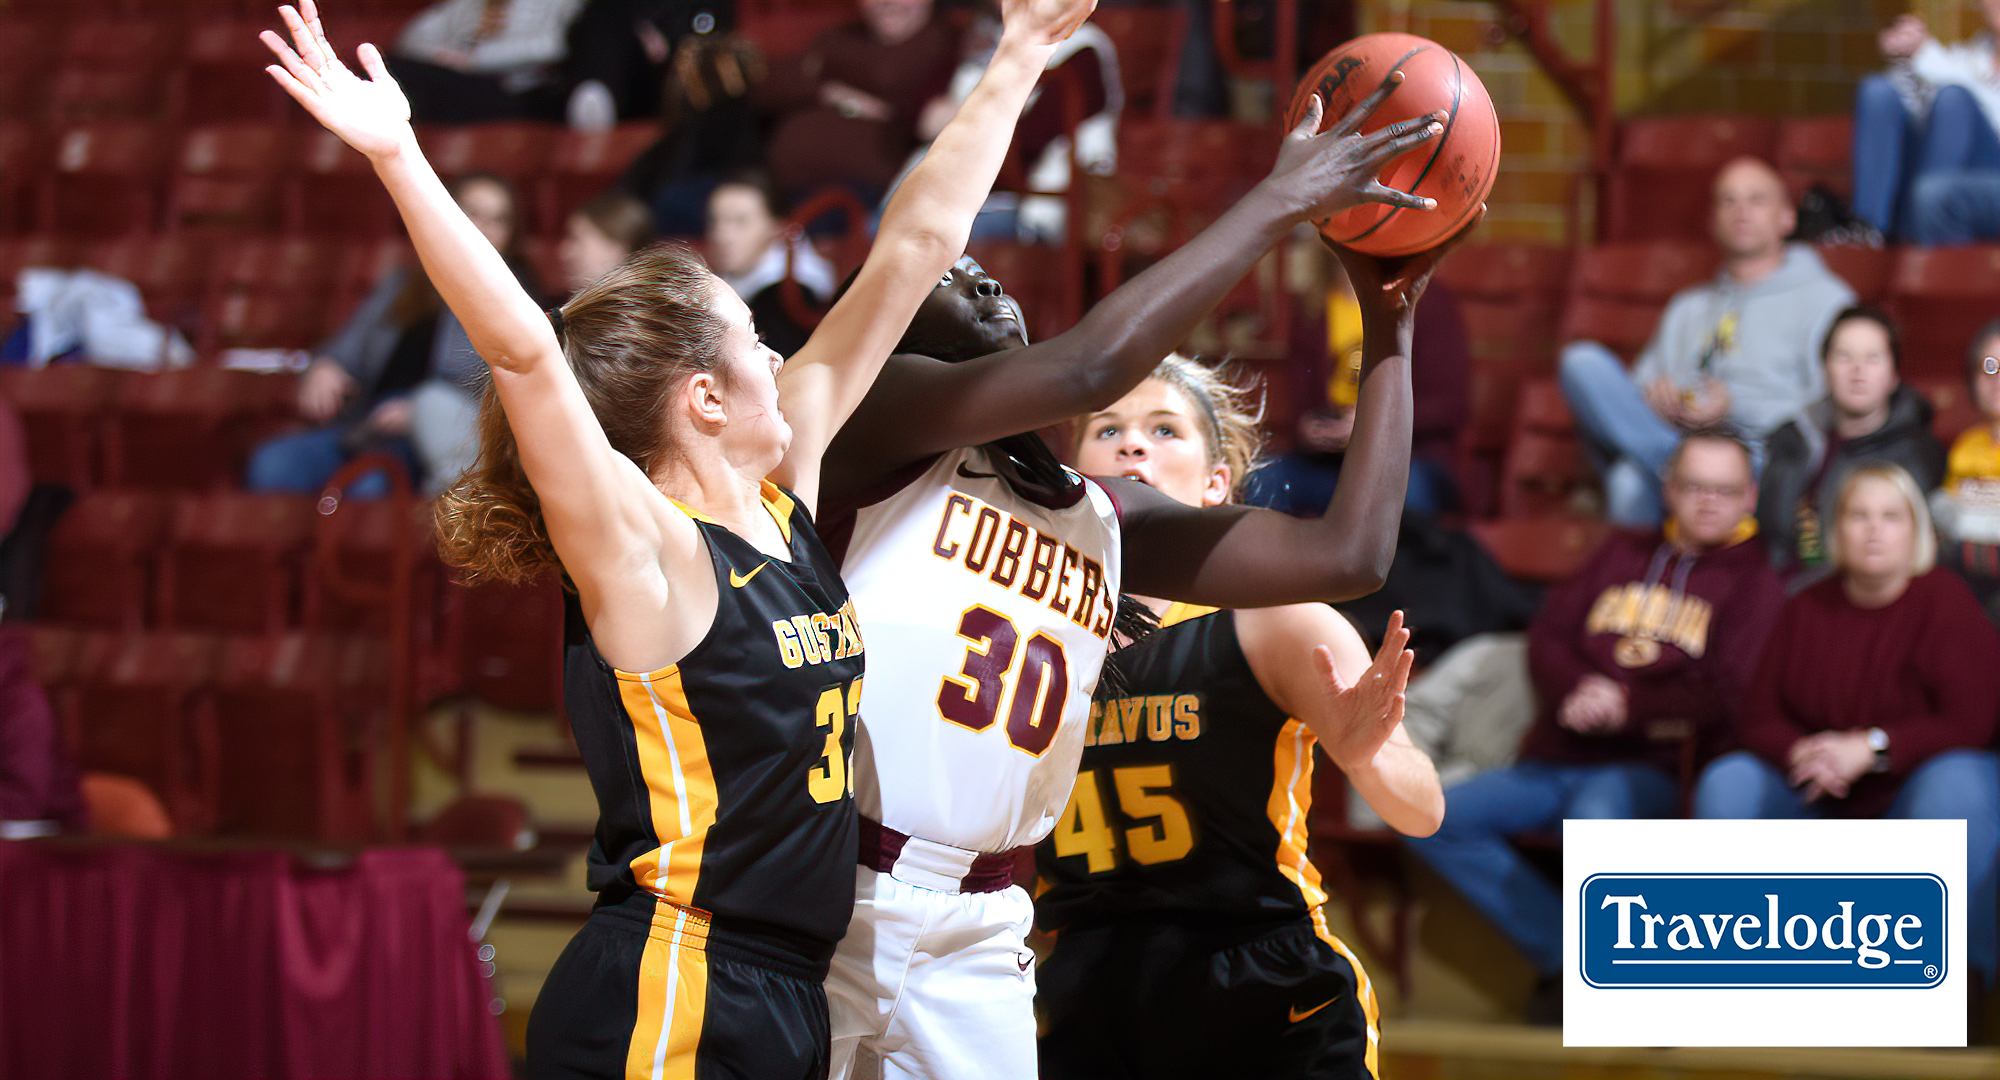 Junior Mary Sem went 6-for-9 from the floor and 9-for-11 from the free throw line and finished with a game-high 21 points in the Cobbers loss at Gustavus (Pic taken in 2019)